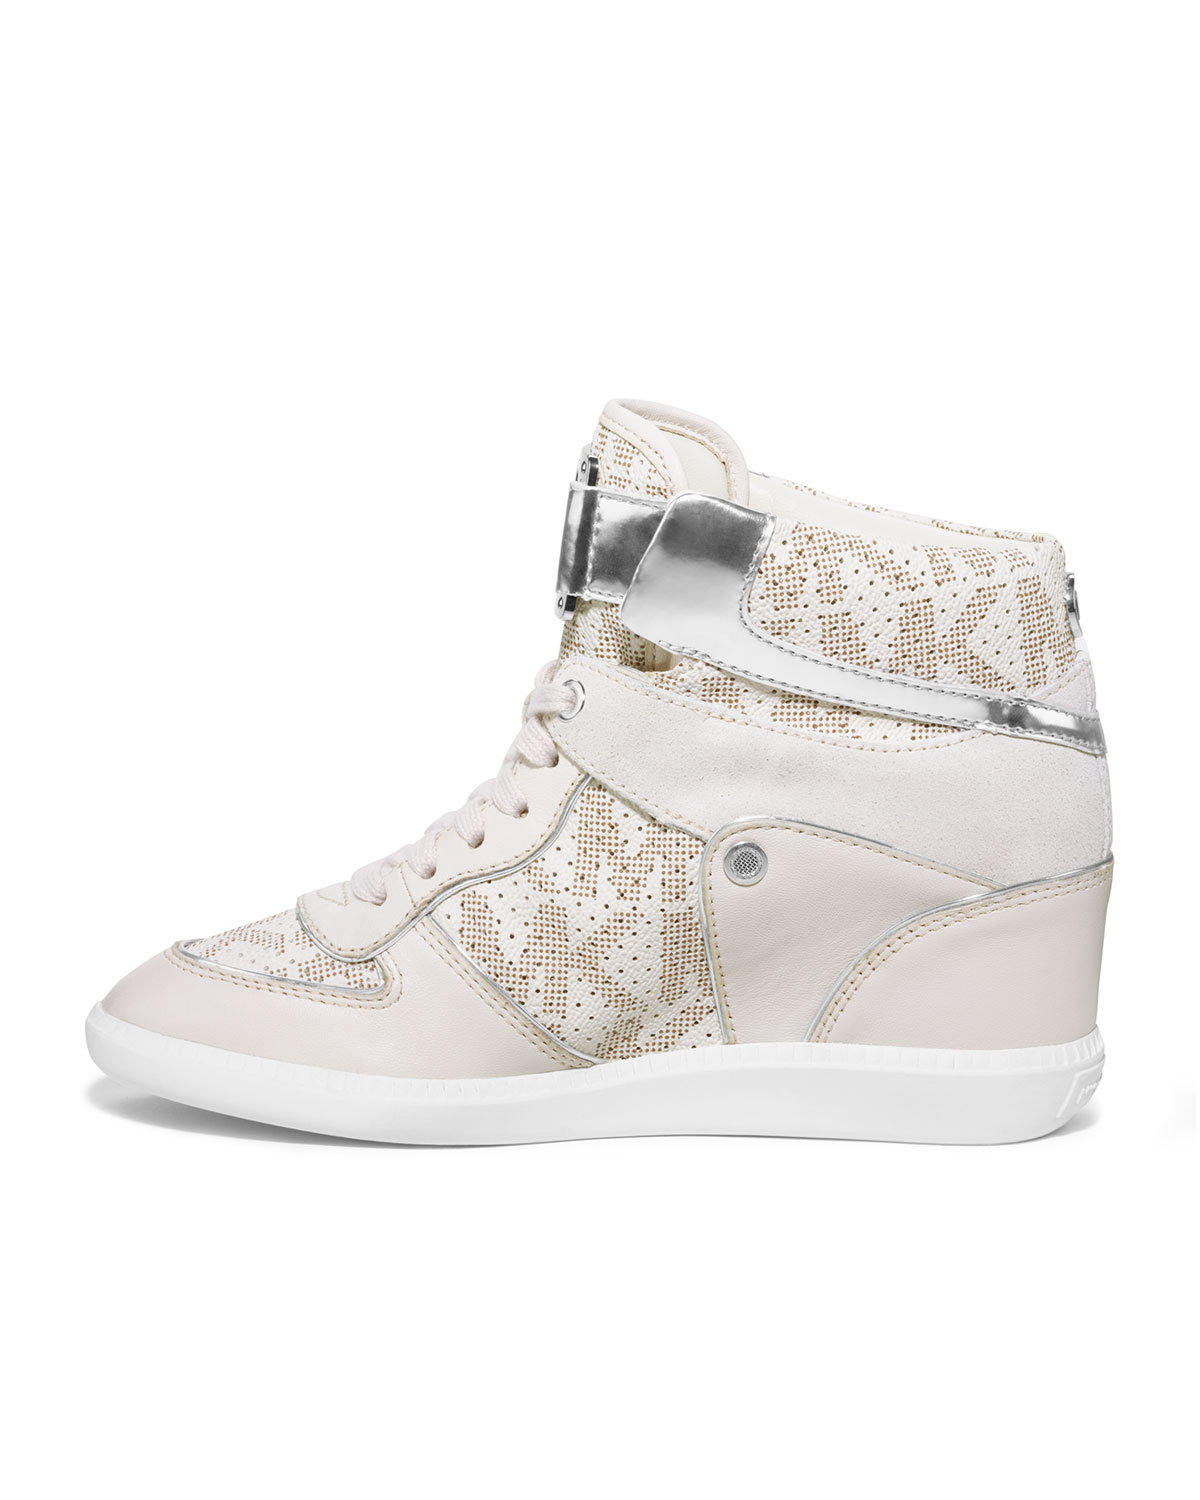 michael kors nikko high top sneaker in white lyst. Black Bedroom Furniture Sets. Home Design Ideas